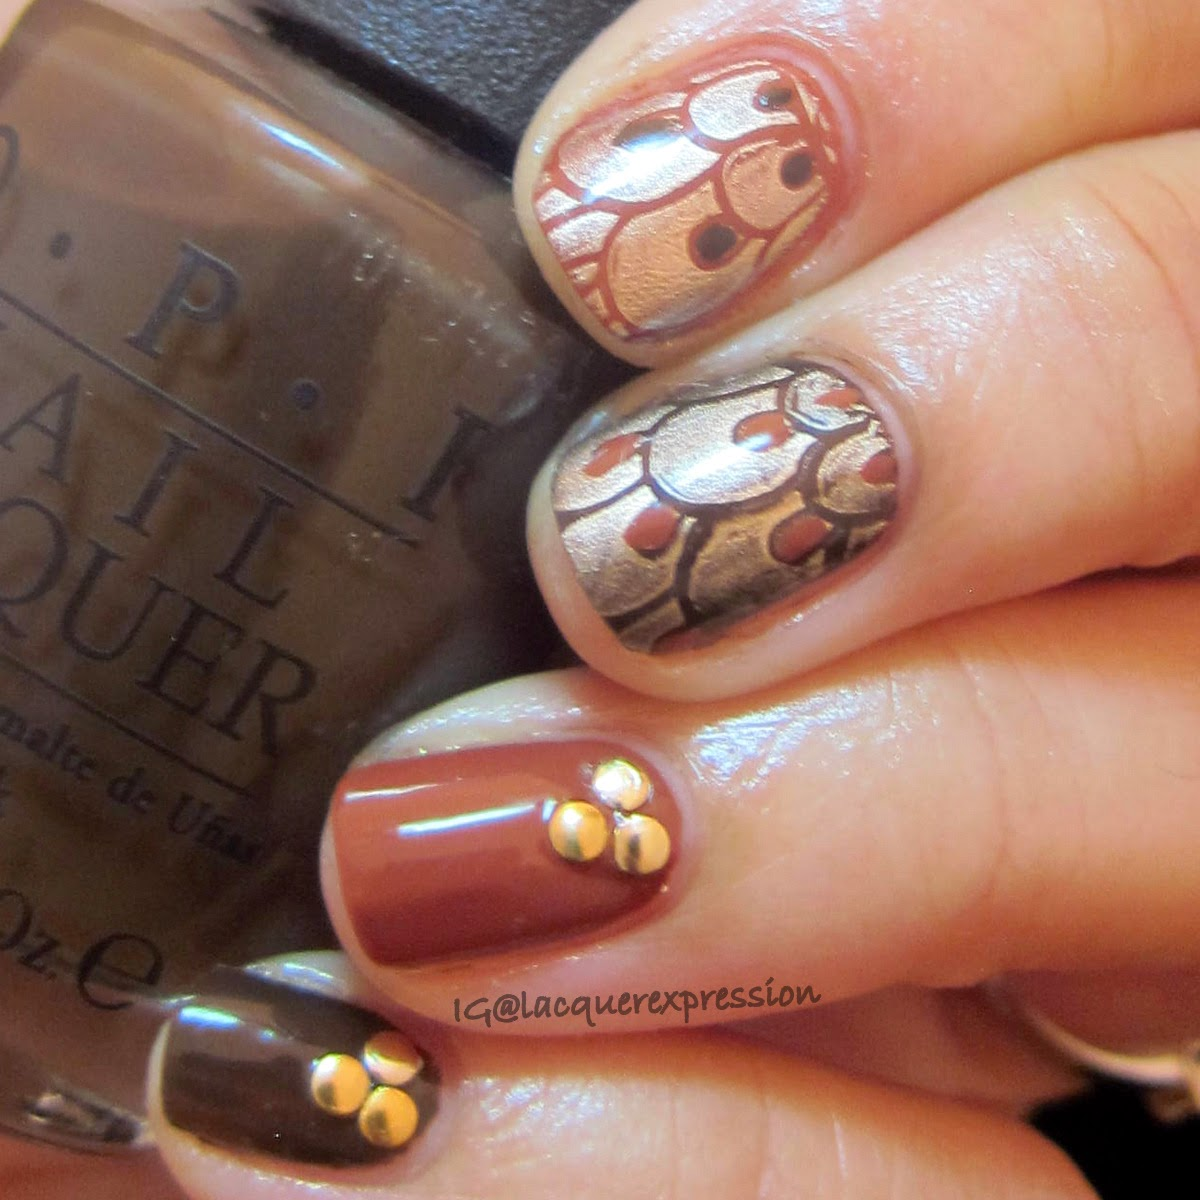 Thanksgiving Feathers nail art using O.P.I. Suzy loves cowboys nail polish